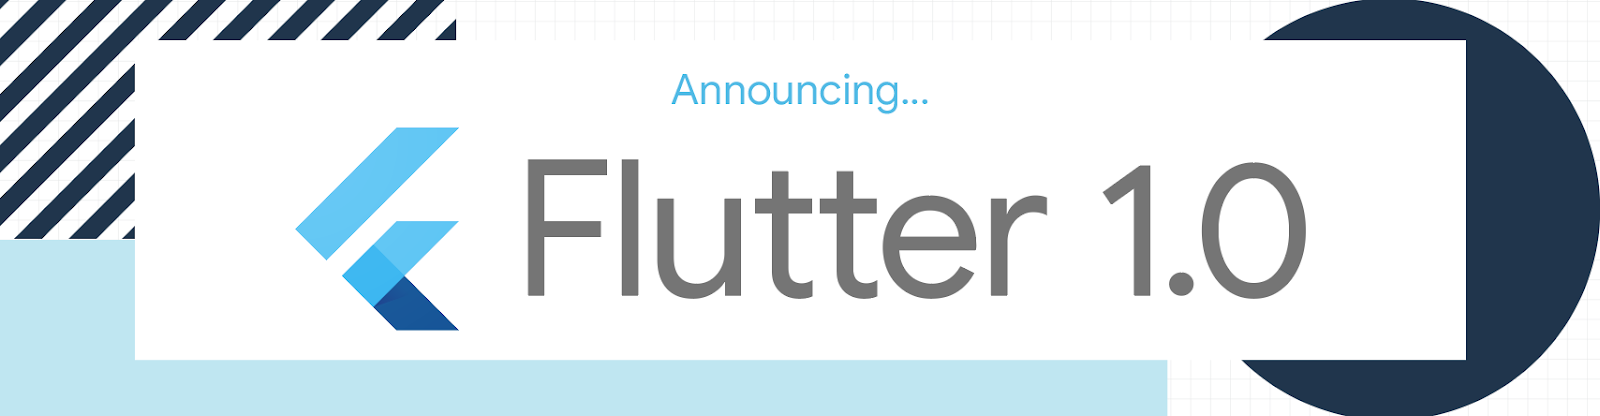 Flutter 1.0: Google's Portable UI Toolkit, Cross-platform mobile development